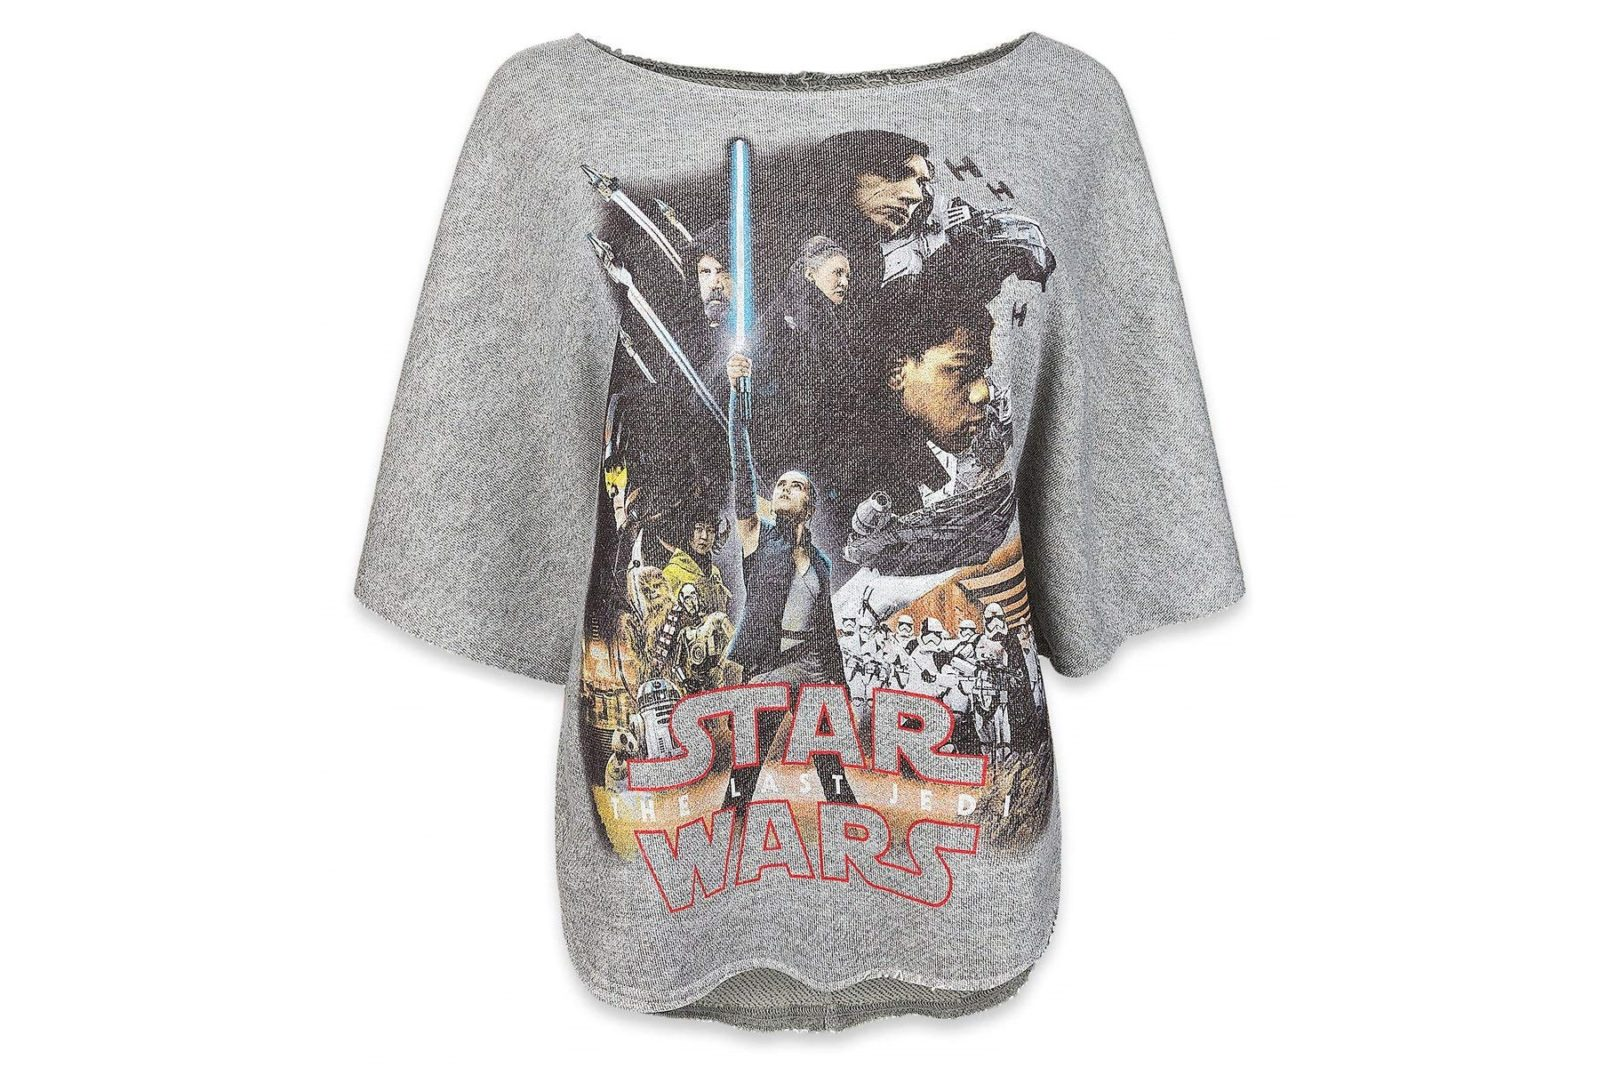 Women's The Last Jedi Sweatshirt on Amazon